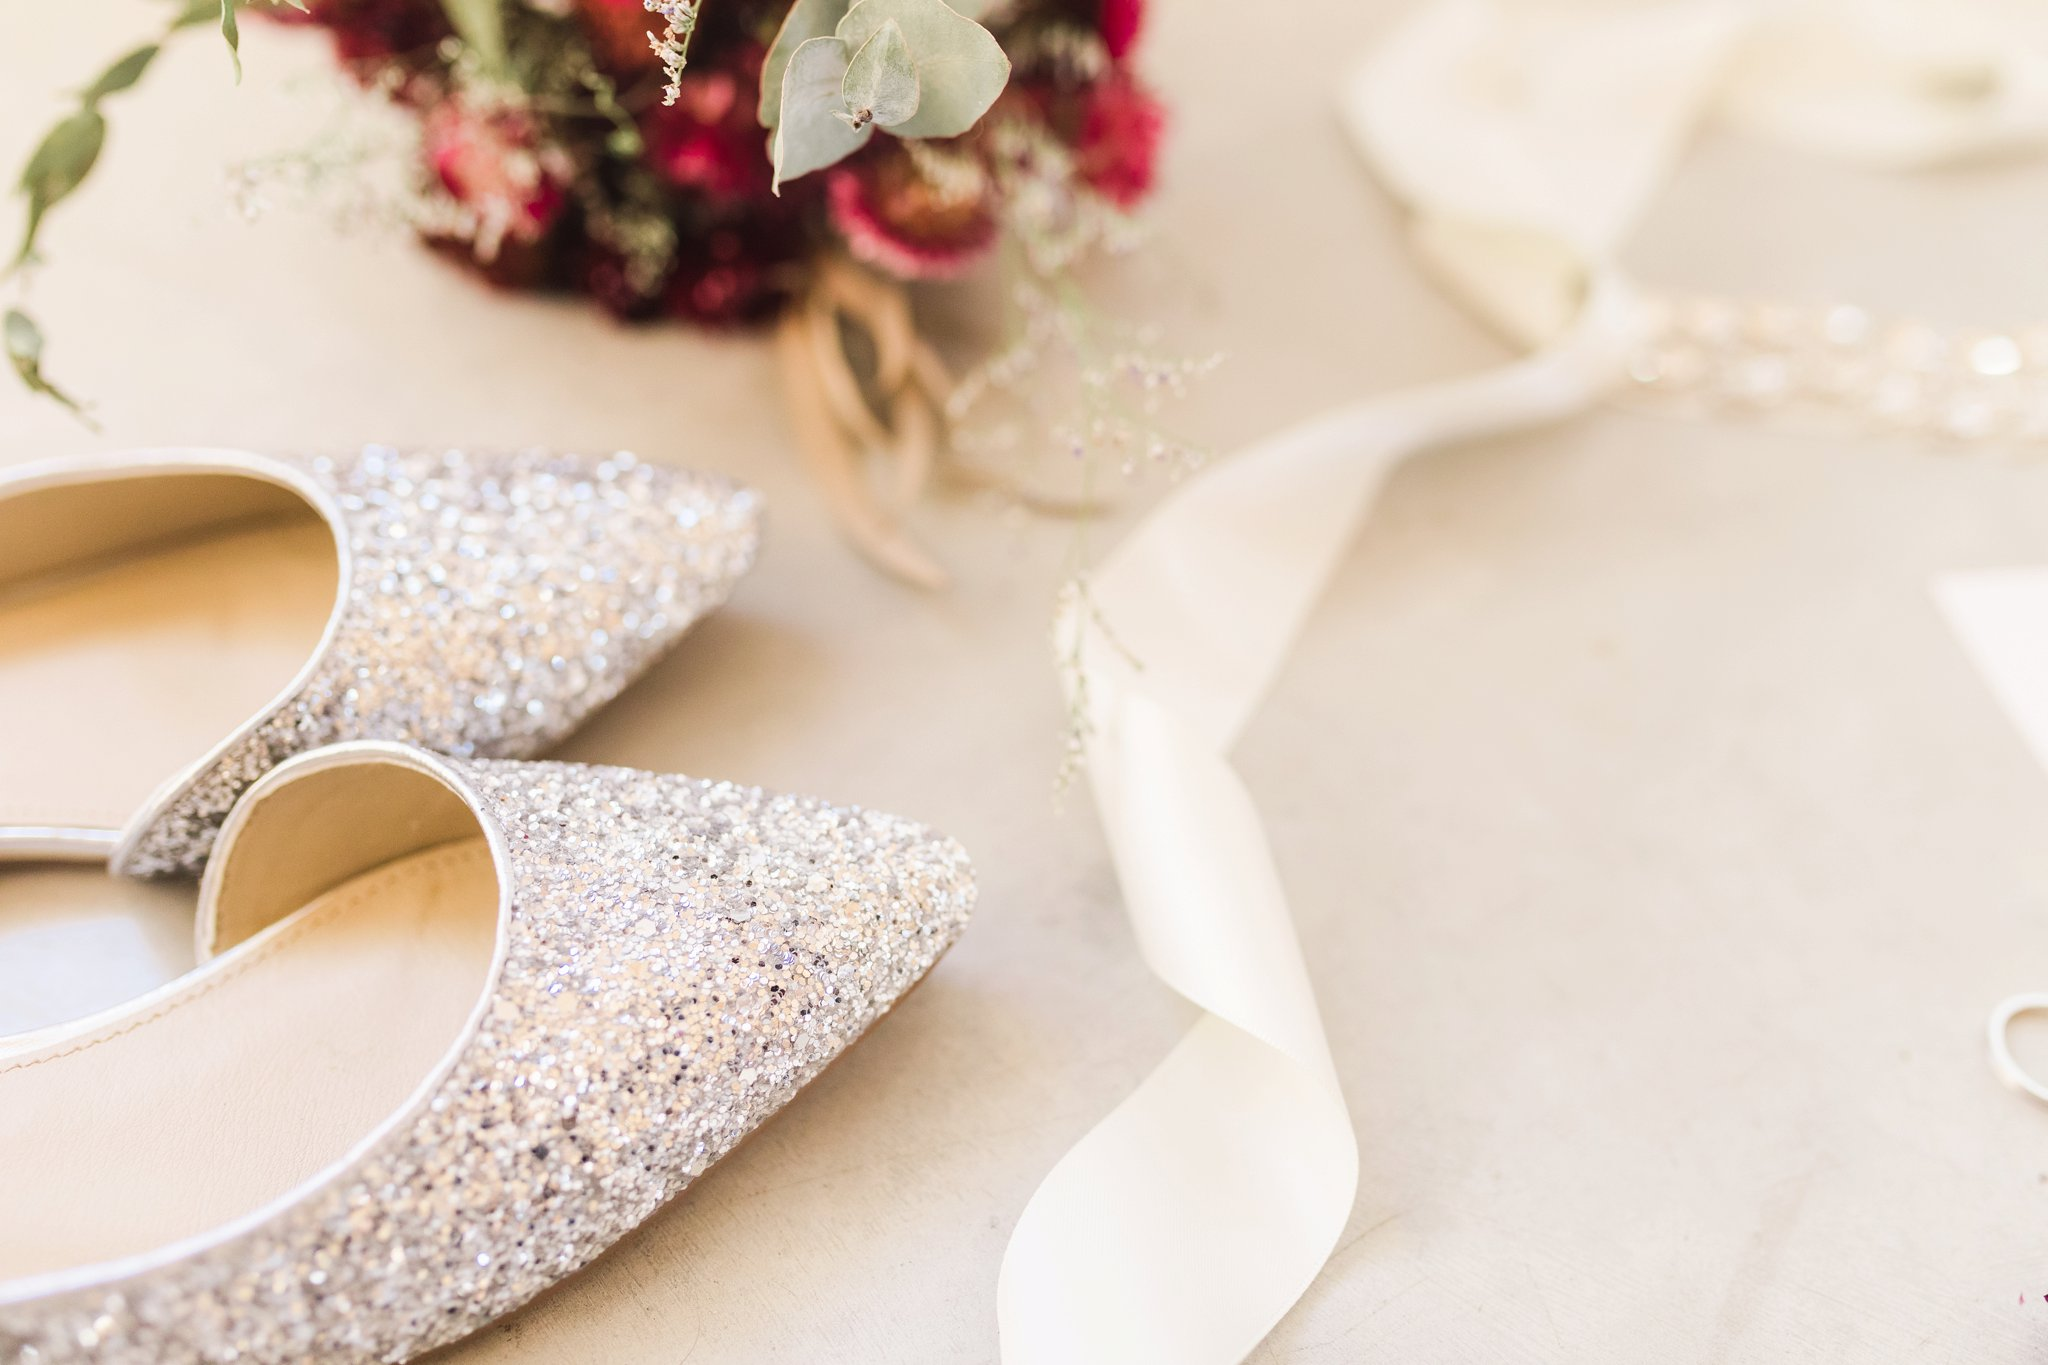 Sparkly silver shoes at the Winter wedding at Le Belvedere